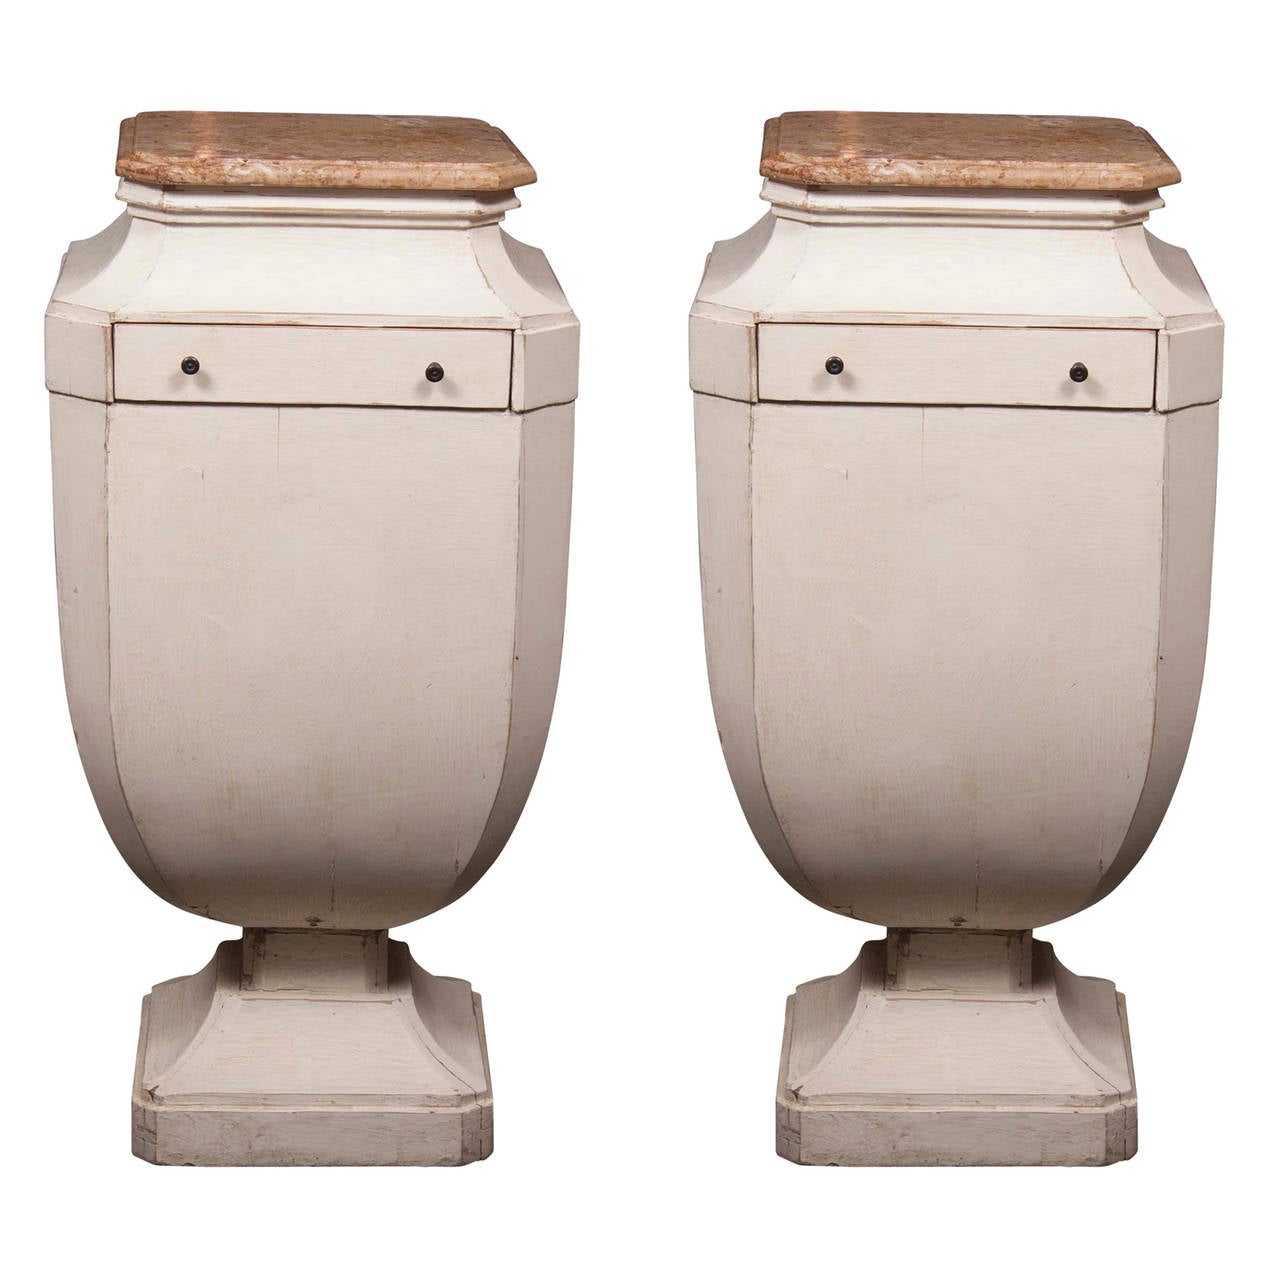 Pair of 19th Century Gustavian Pedestals in Urn Form